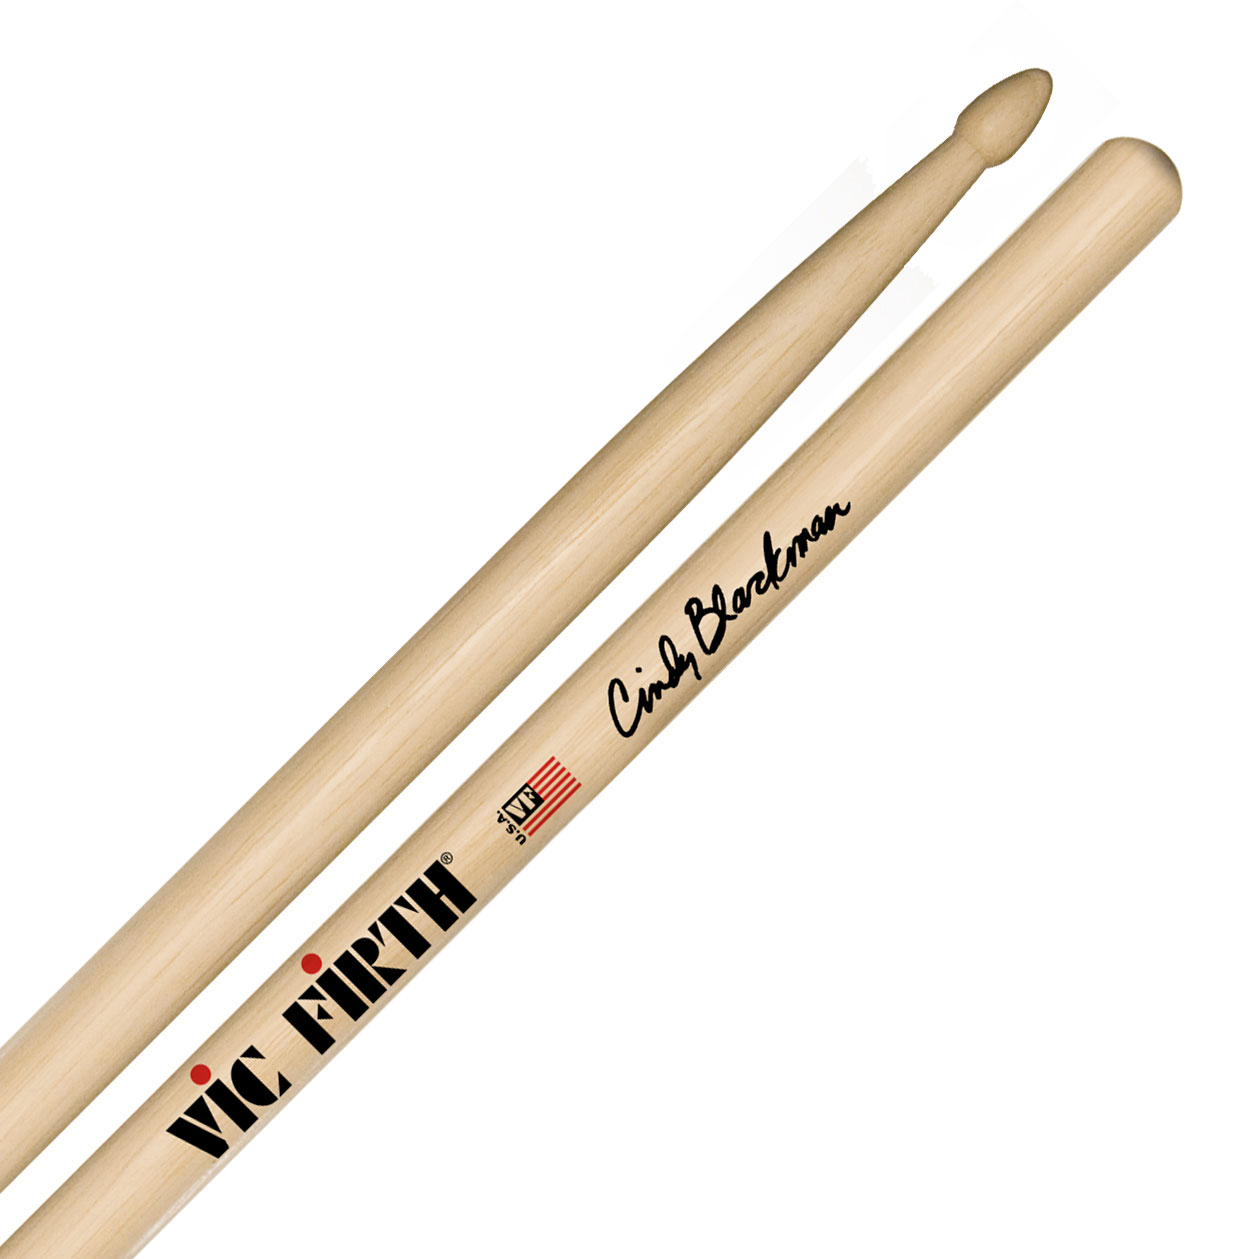 Vic Firth Cindy Blackman Signature Drumsticks